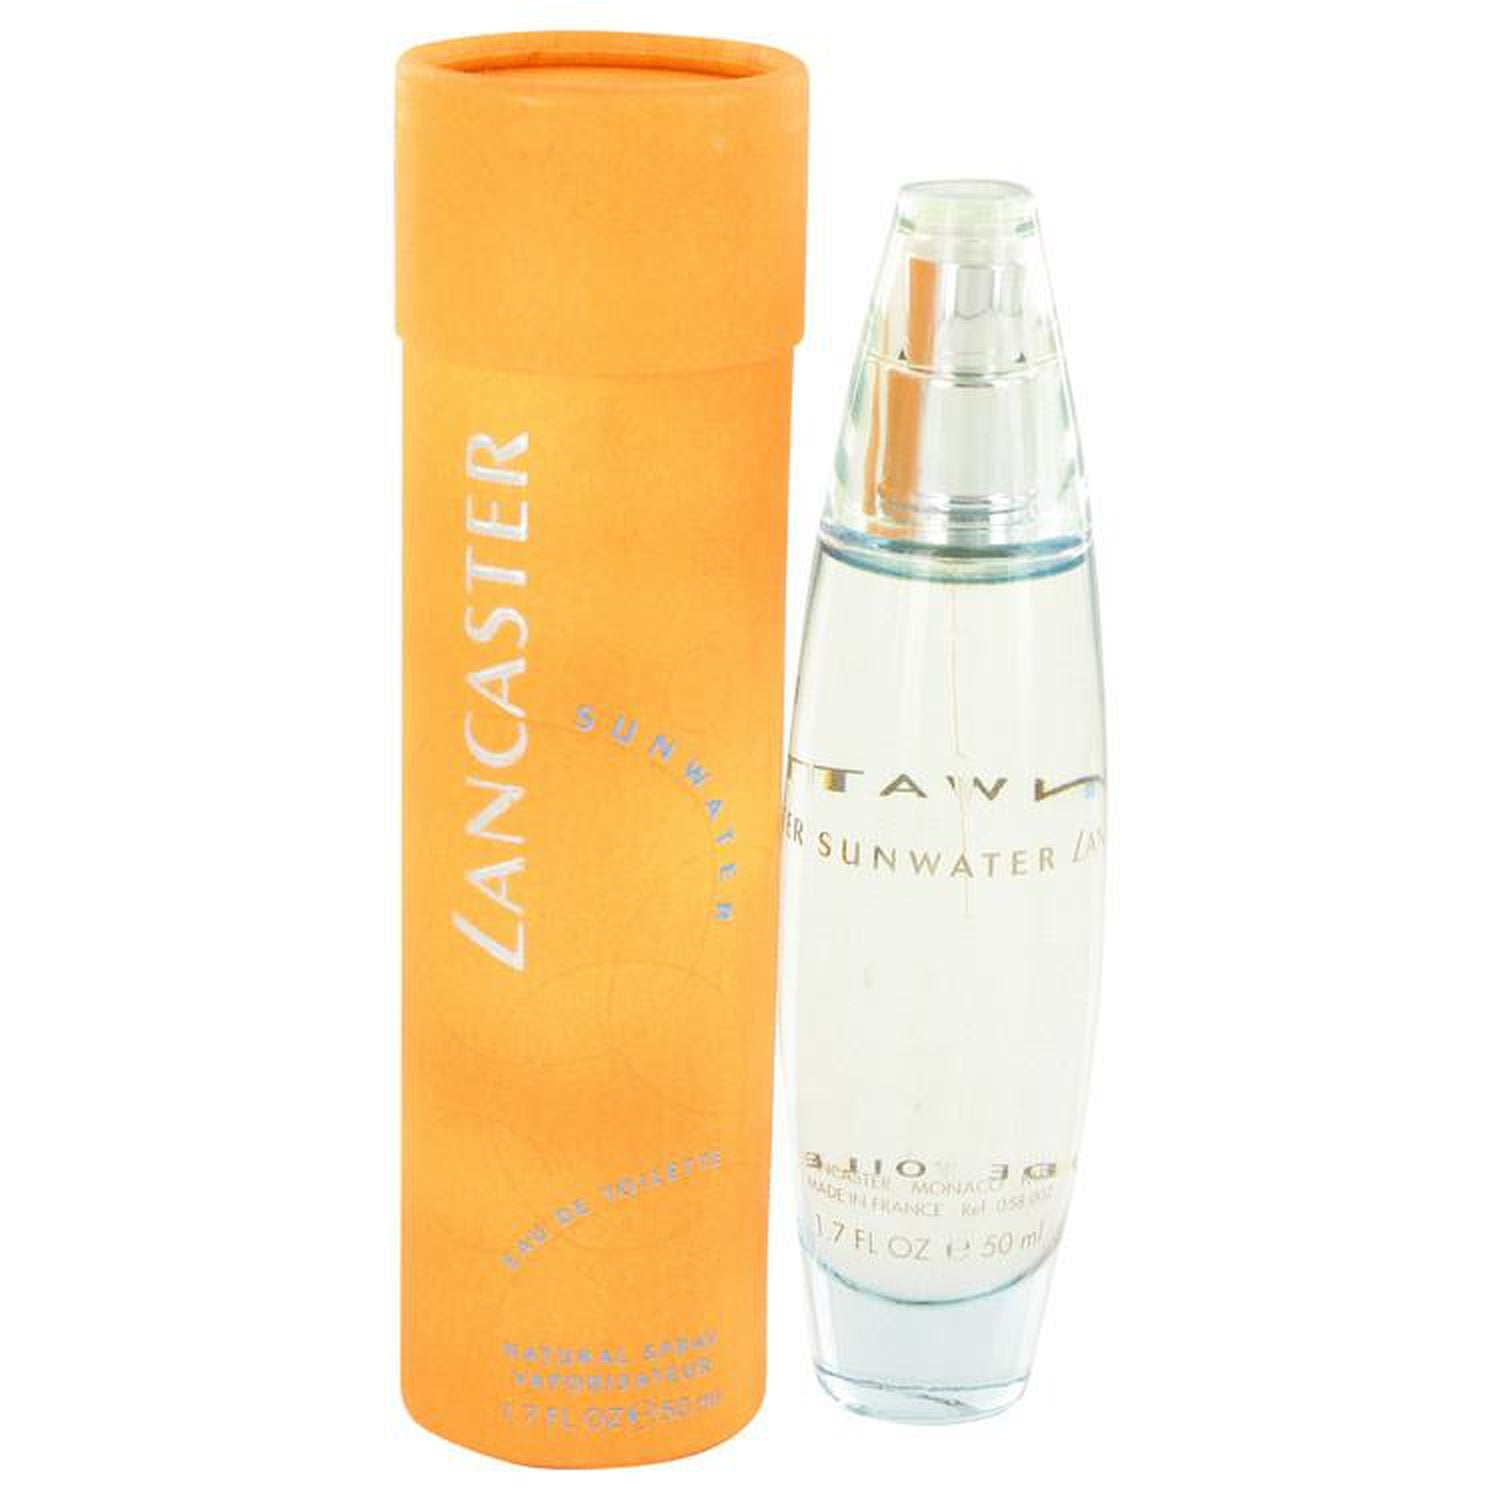 SUNWATER by Lancaster Eau De Toilette Spray 1.7 oz